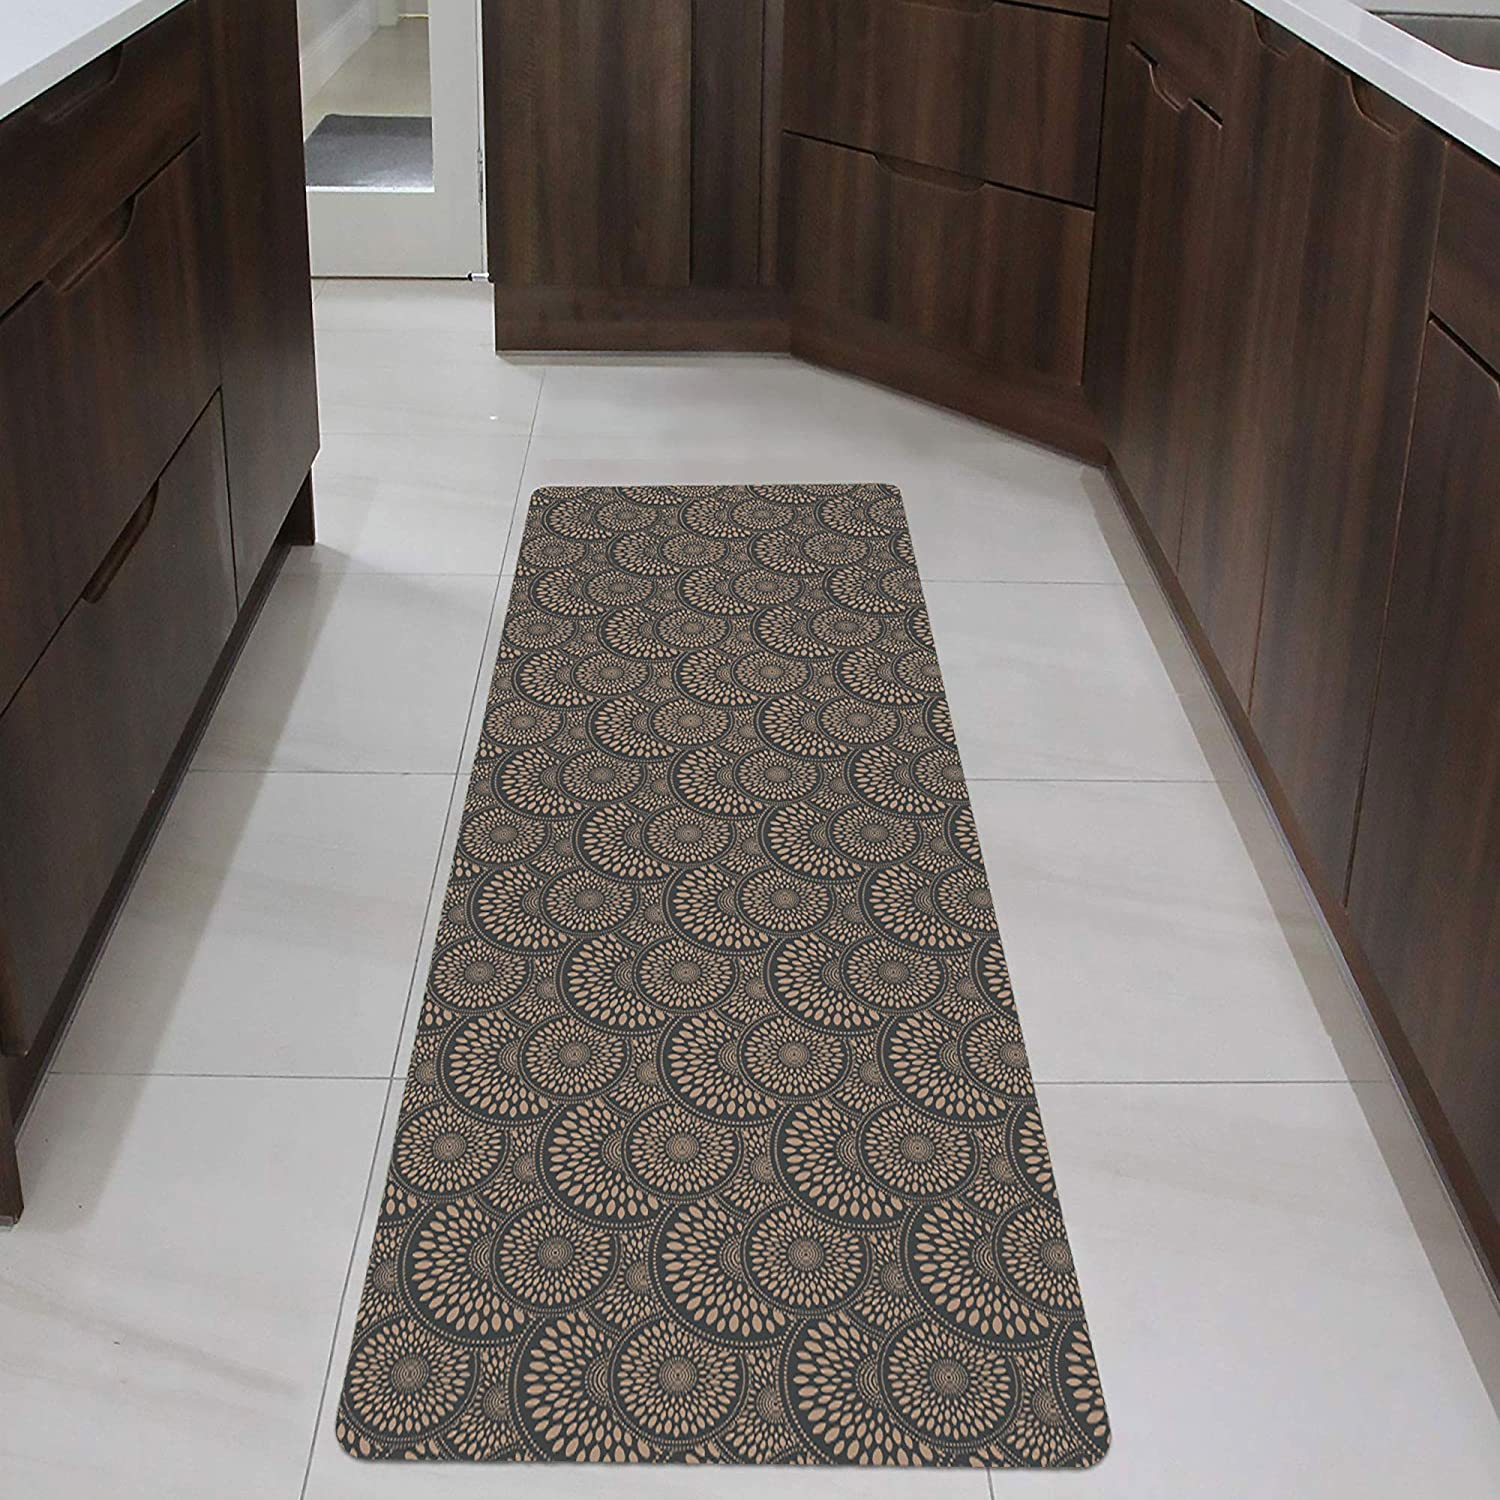 """Shape28 Runner Mat Ultra-Thin Kitchen Rug with Non Slip Rubber Backing 60x23"""", Cappuccino: Kitchen & Dining"""